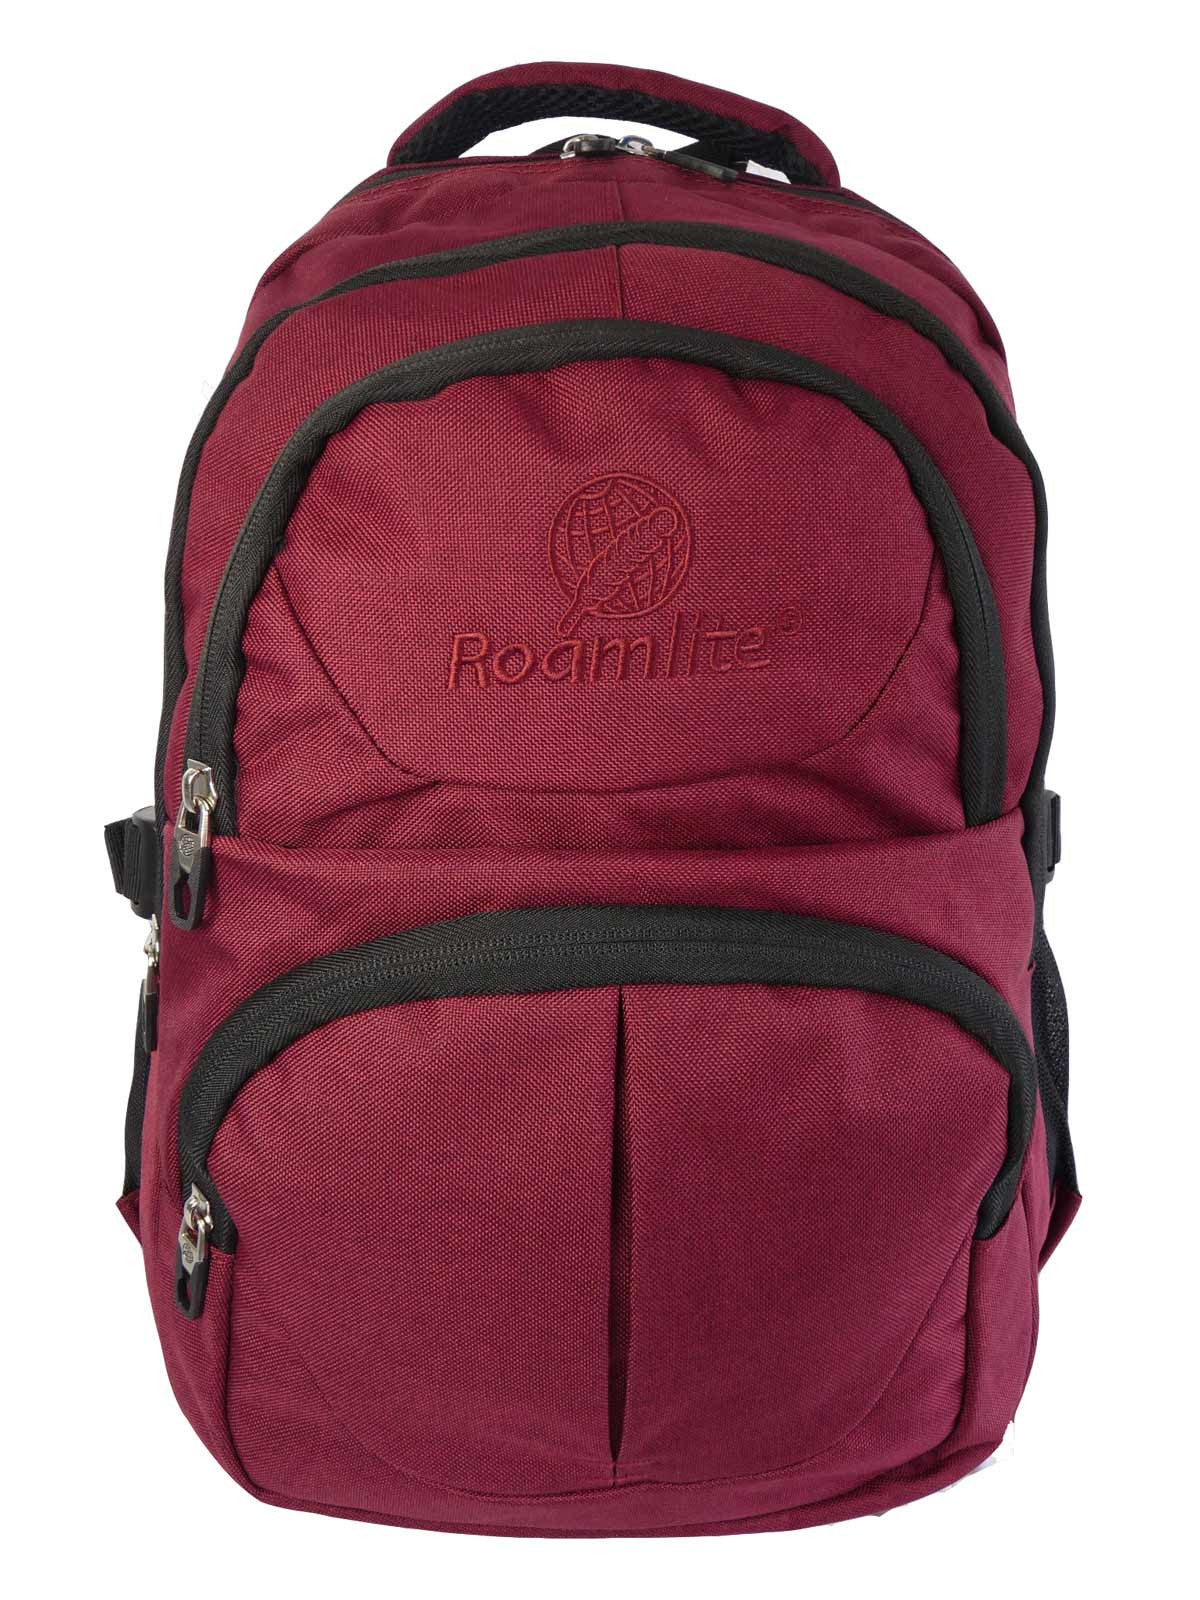 Laptop Macbook Backpack Rucksack Bag RL43Bu Front View